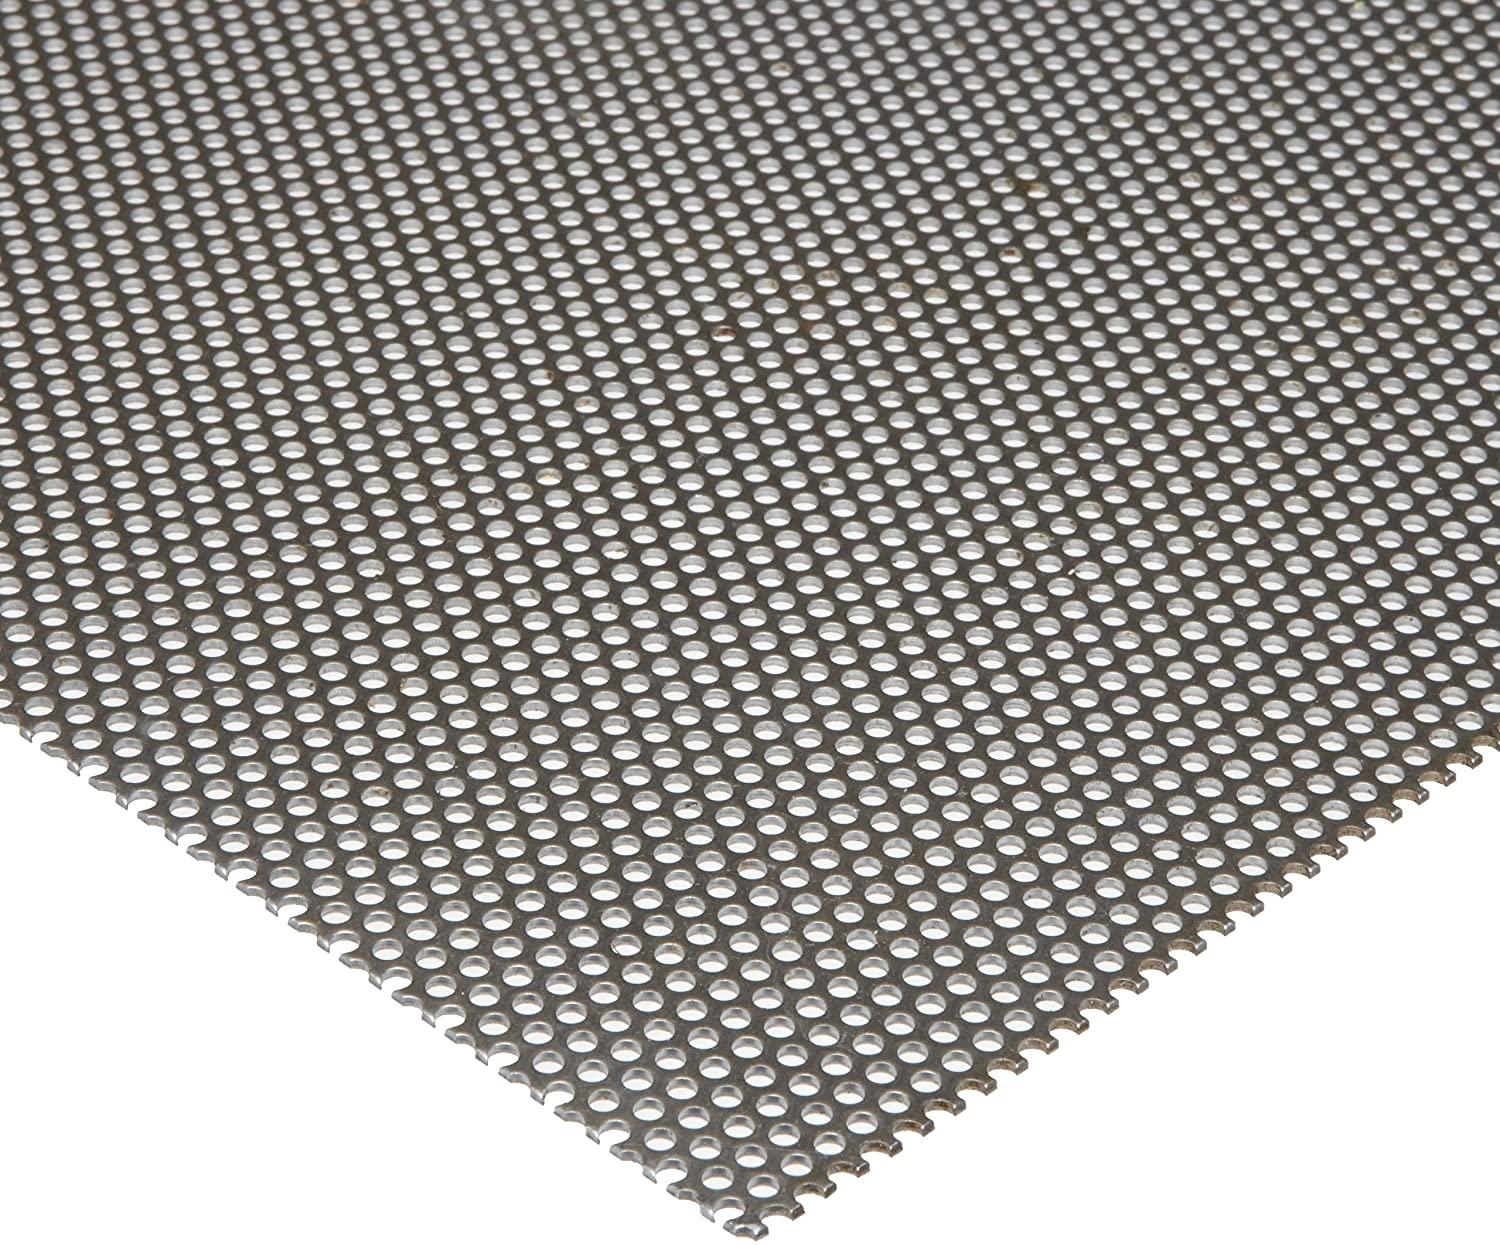 Unpolished Staggered 0.1875 Holes 0.036 Thickness Hot Rolled ASTM A36 Mill 0.25 Center to Center A36 Steel Perforated Sheet 12 Width 24 Length 20 Gauge Finish